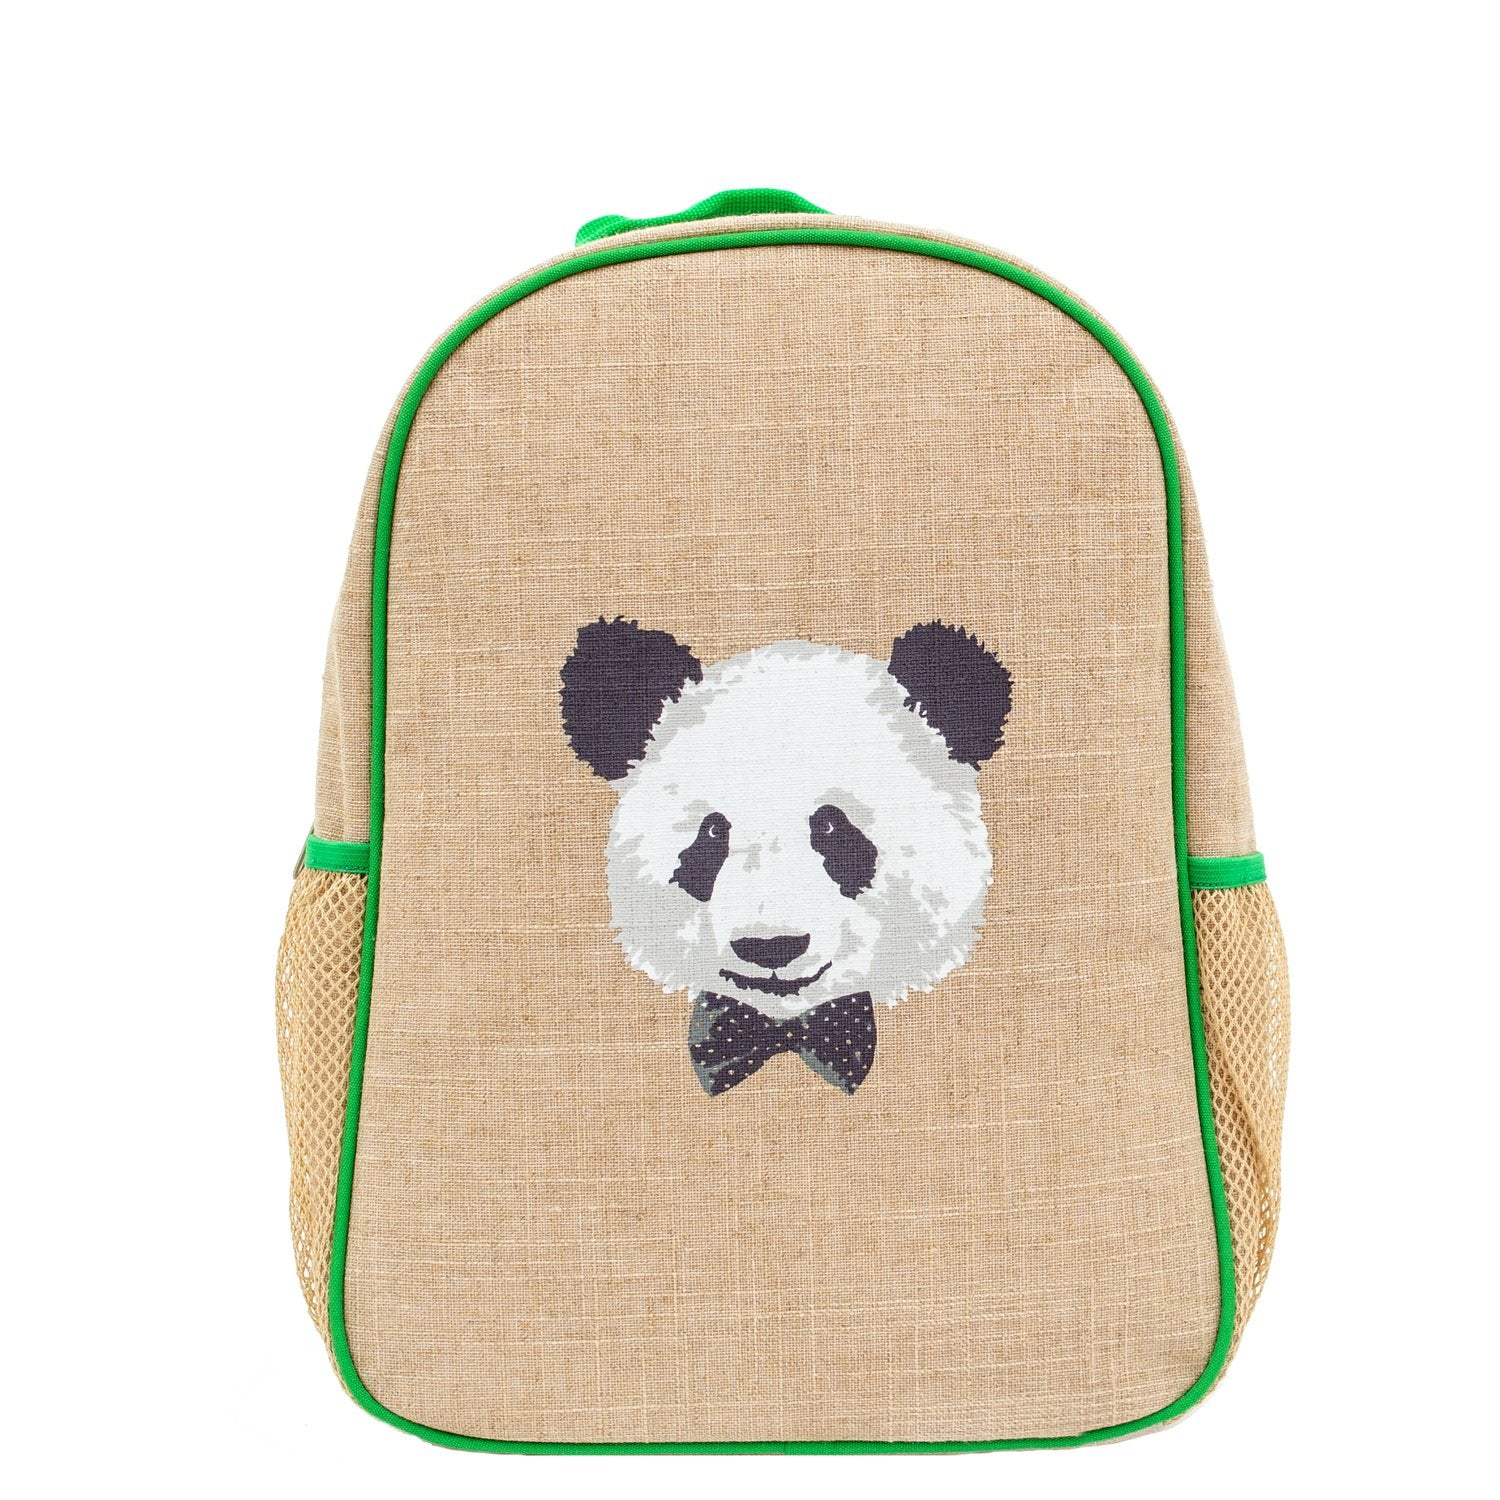 Monsieur Panda Toddler Backpack